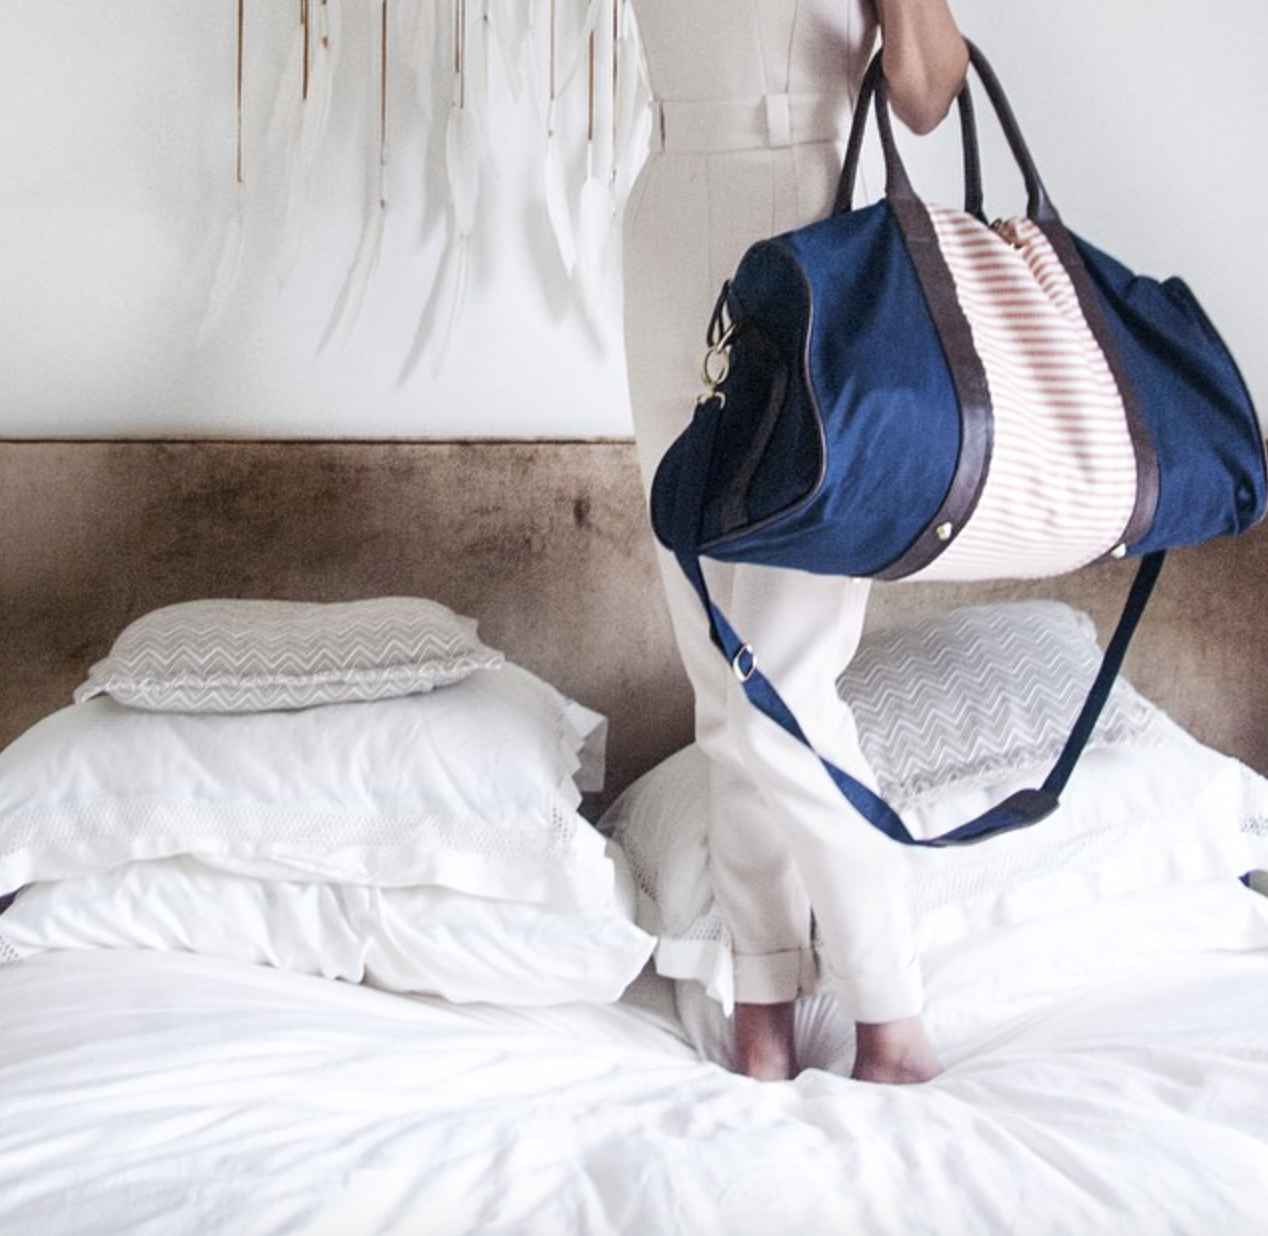 Travel Instructions: Zip on your Miscere appliqué, check into your favorite hotel & jump on the bed upon arrival.  #miscere #nevertoooldtojumponbeds #travelchic #interchangeable #musexcarly #weekenderbag